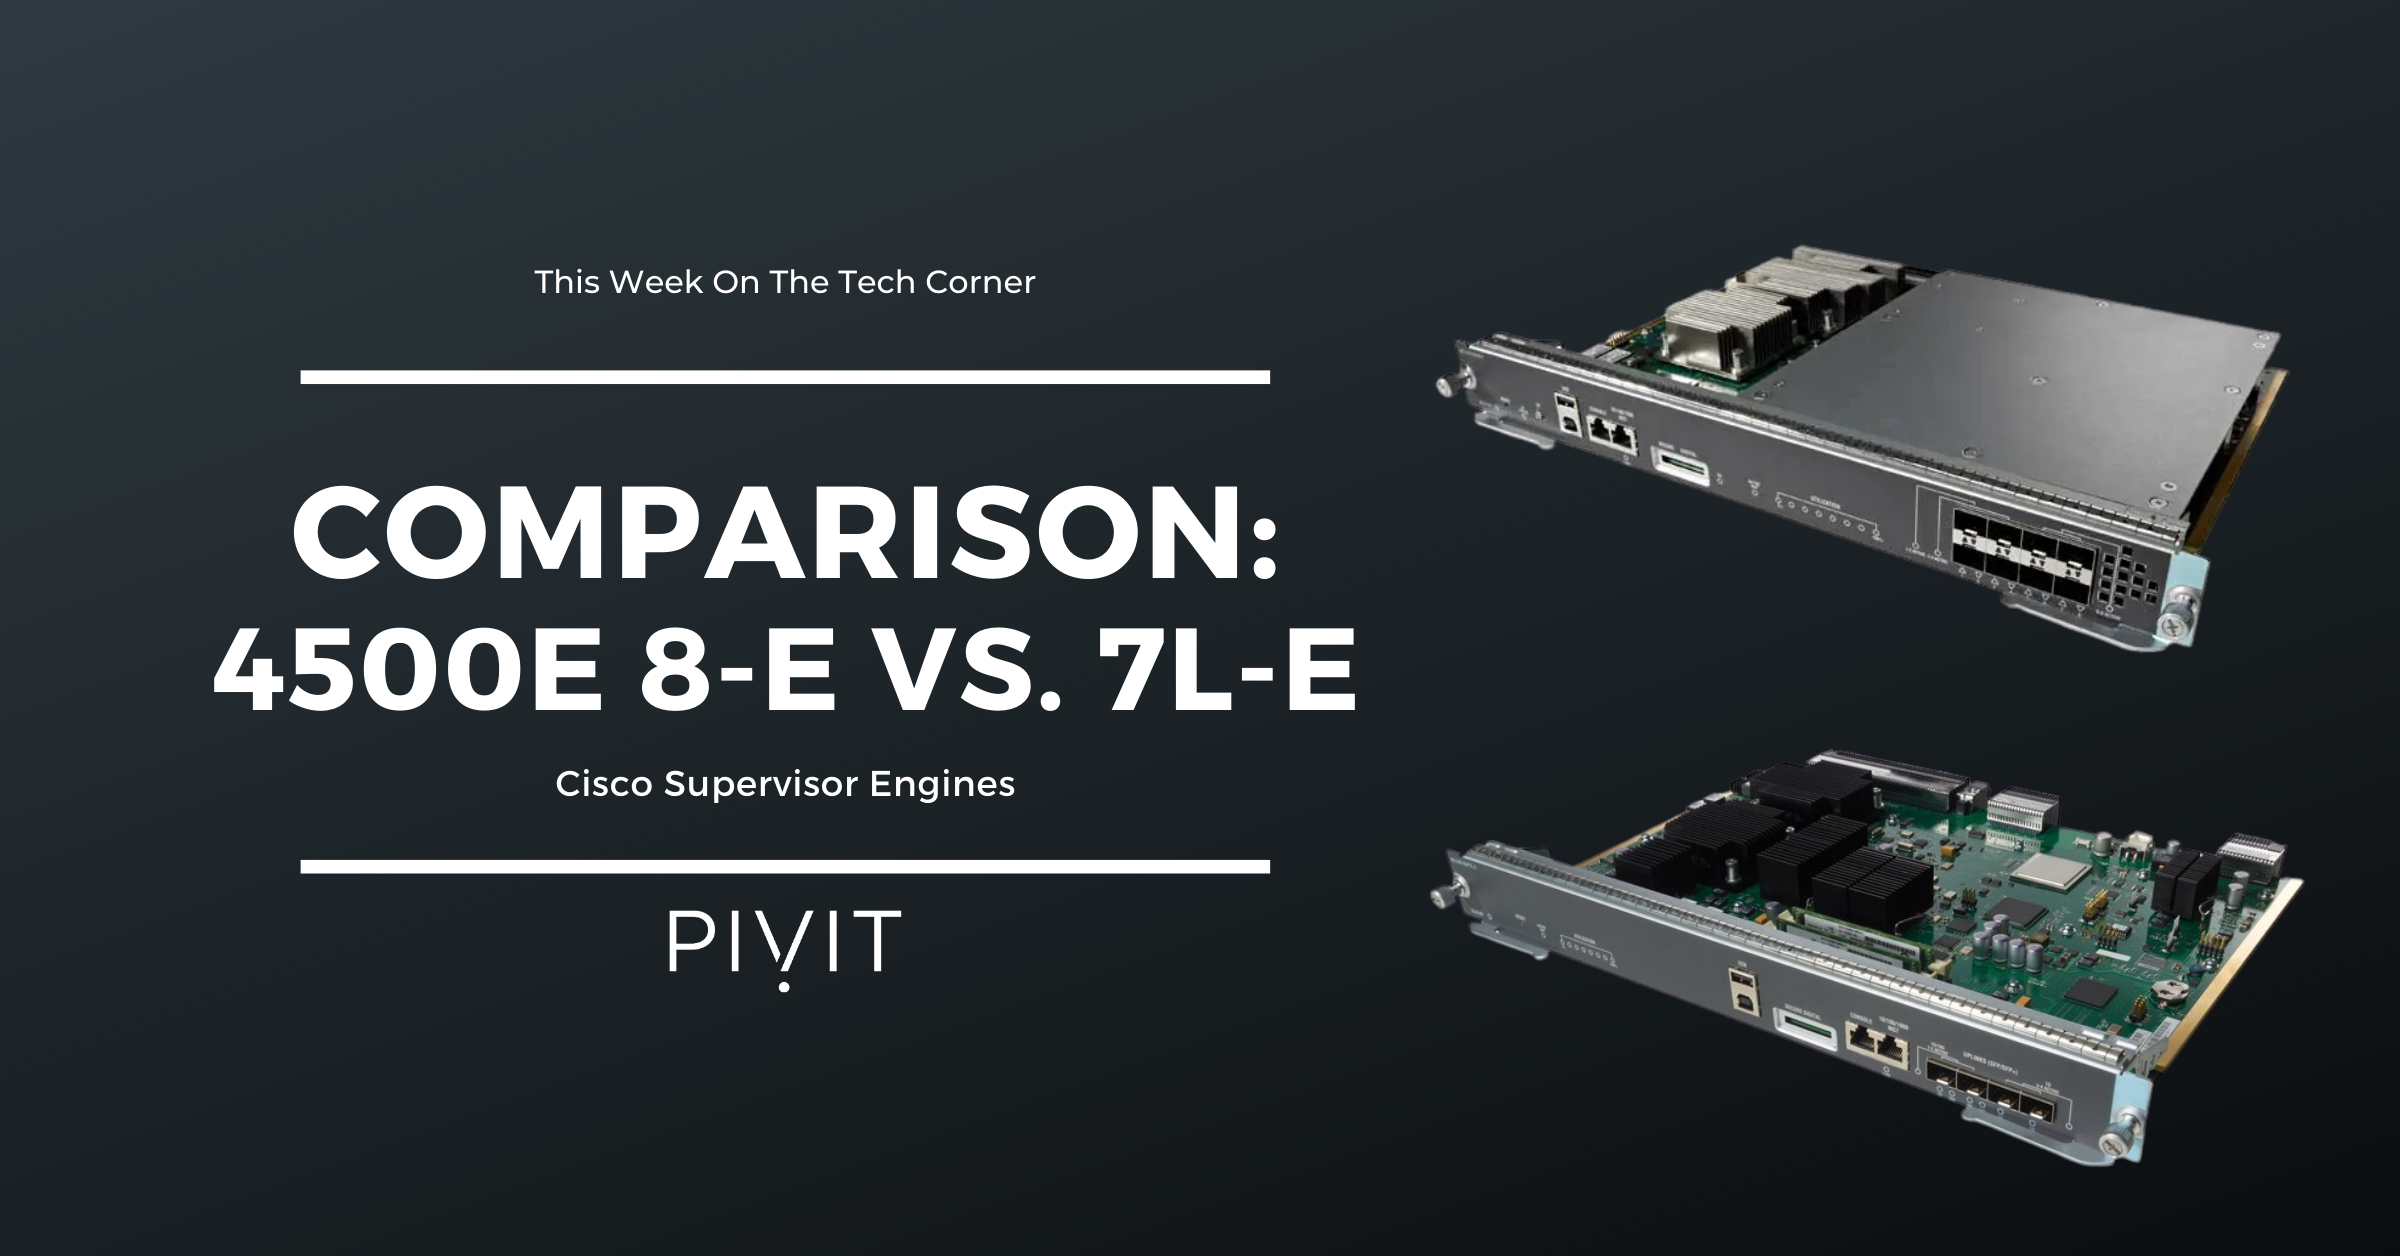 A Supervisor Engine Comparison: 4500E 8-E & 4500E 7L-E